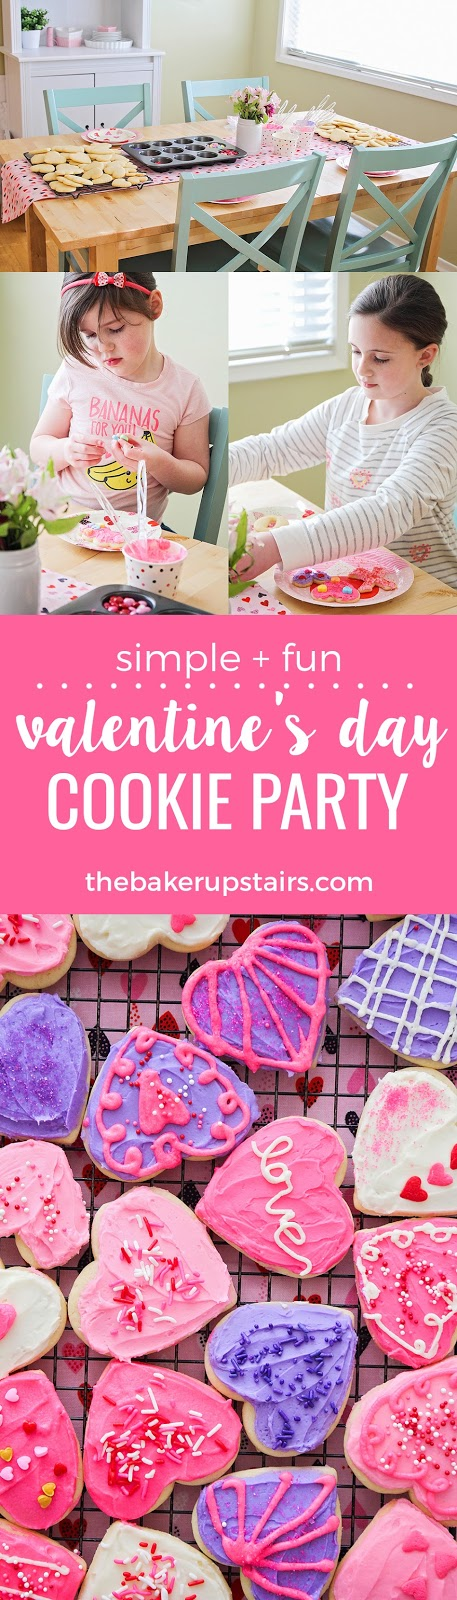 This simple and fun Valentine's Day cookie party is the perfect way to make some sweet memories with your little ones!